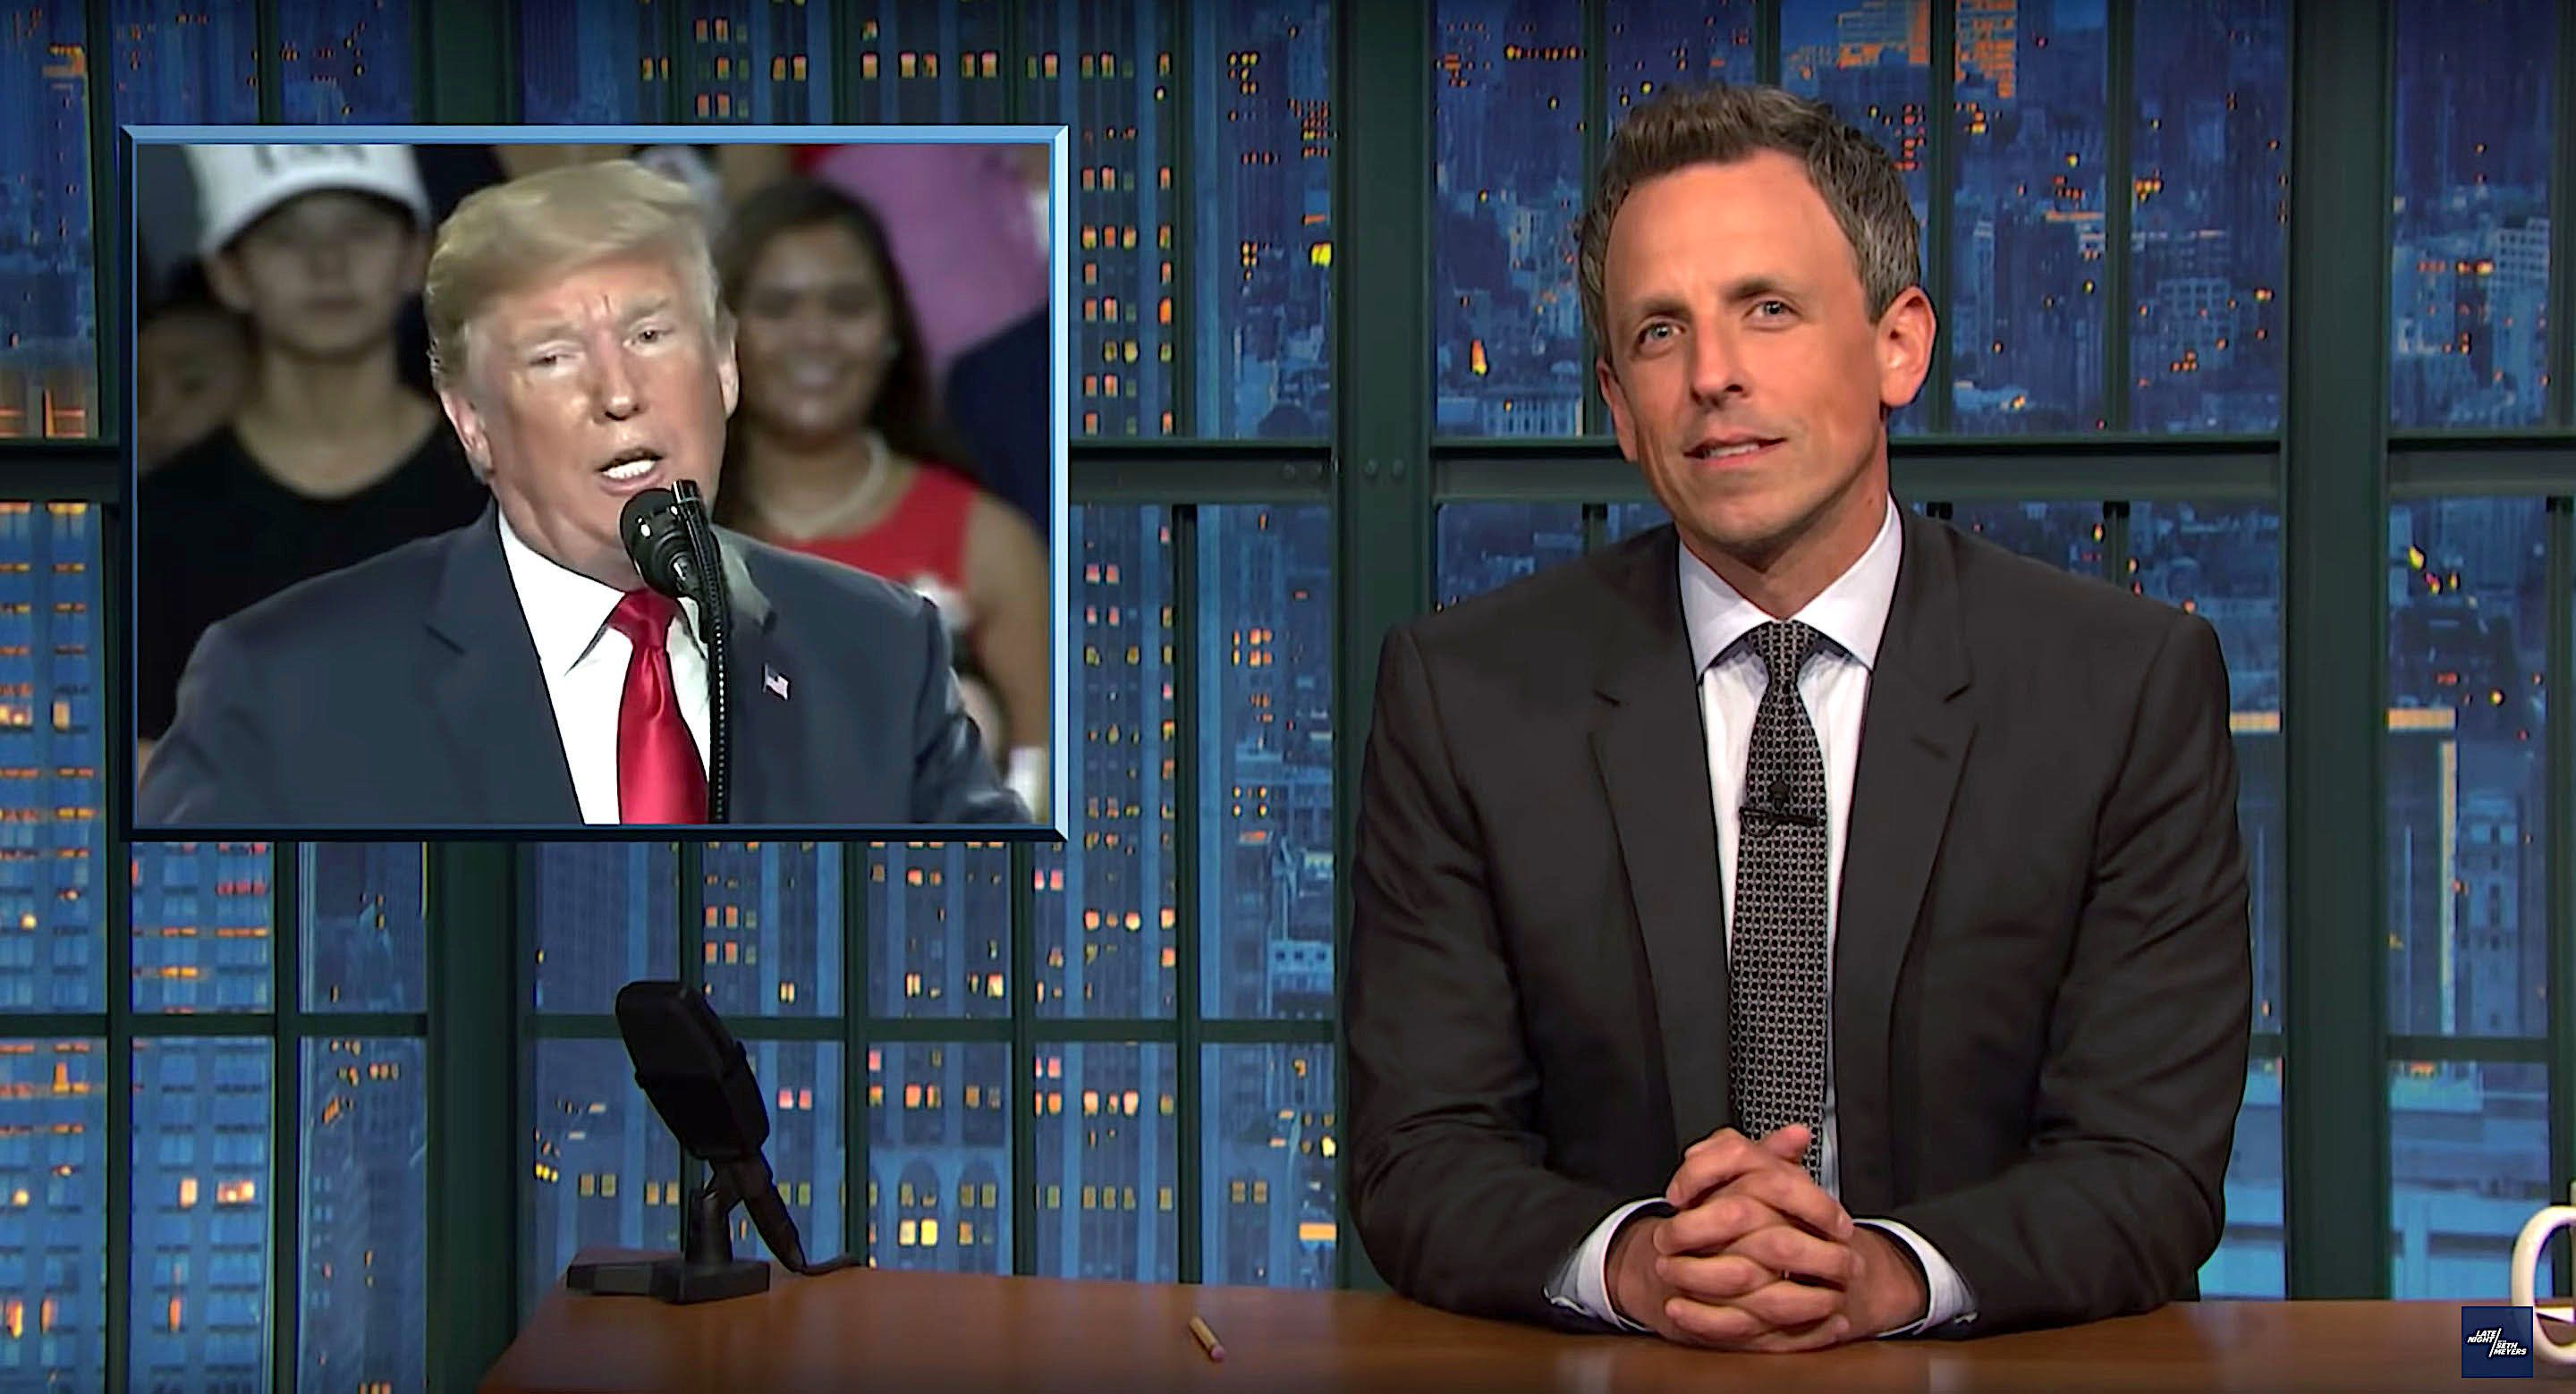 Seth Meyers of Late Night rips President Donald Trump for his Ohio rally